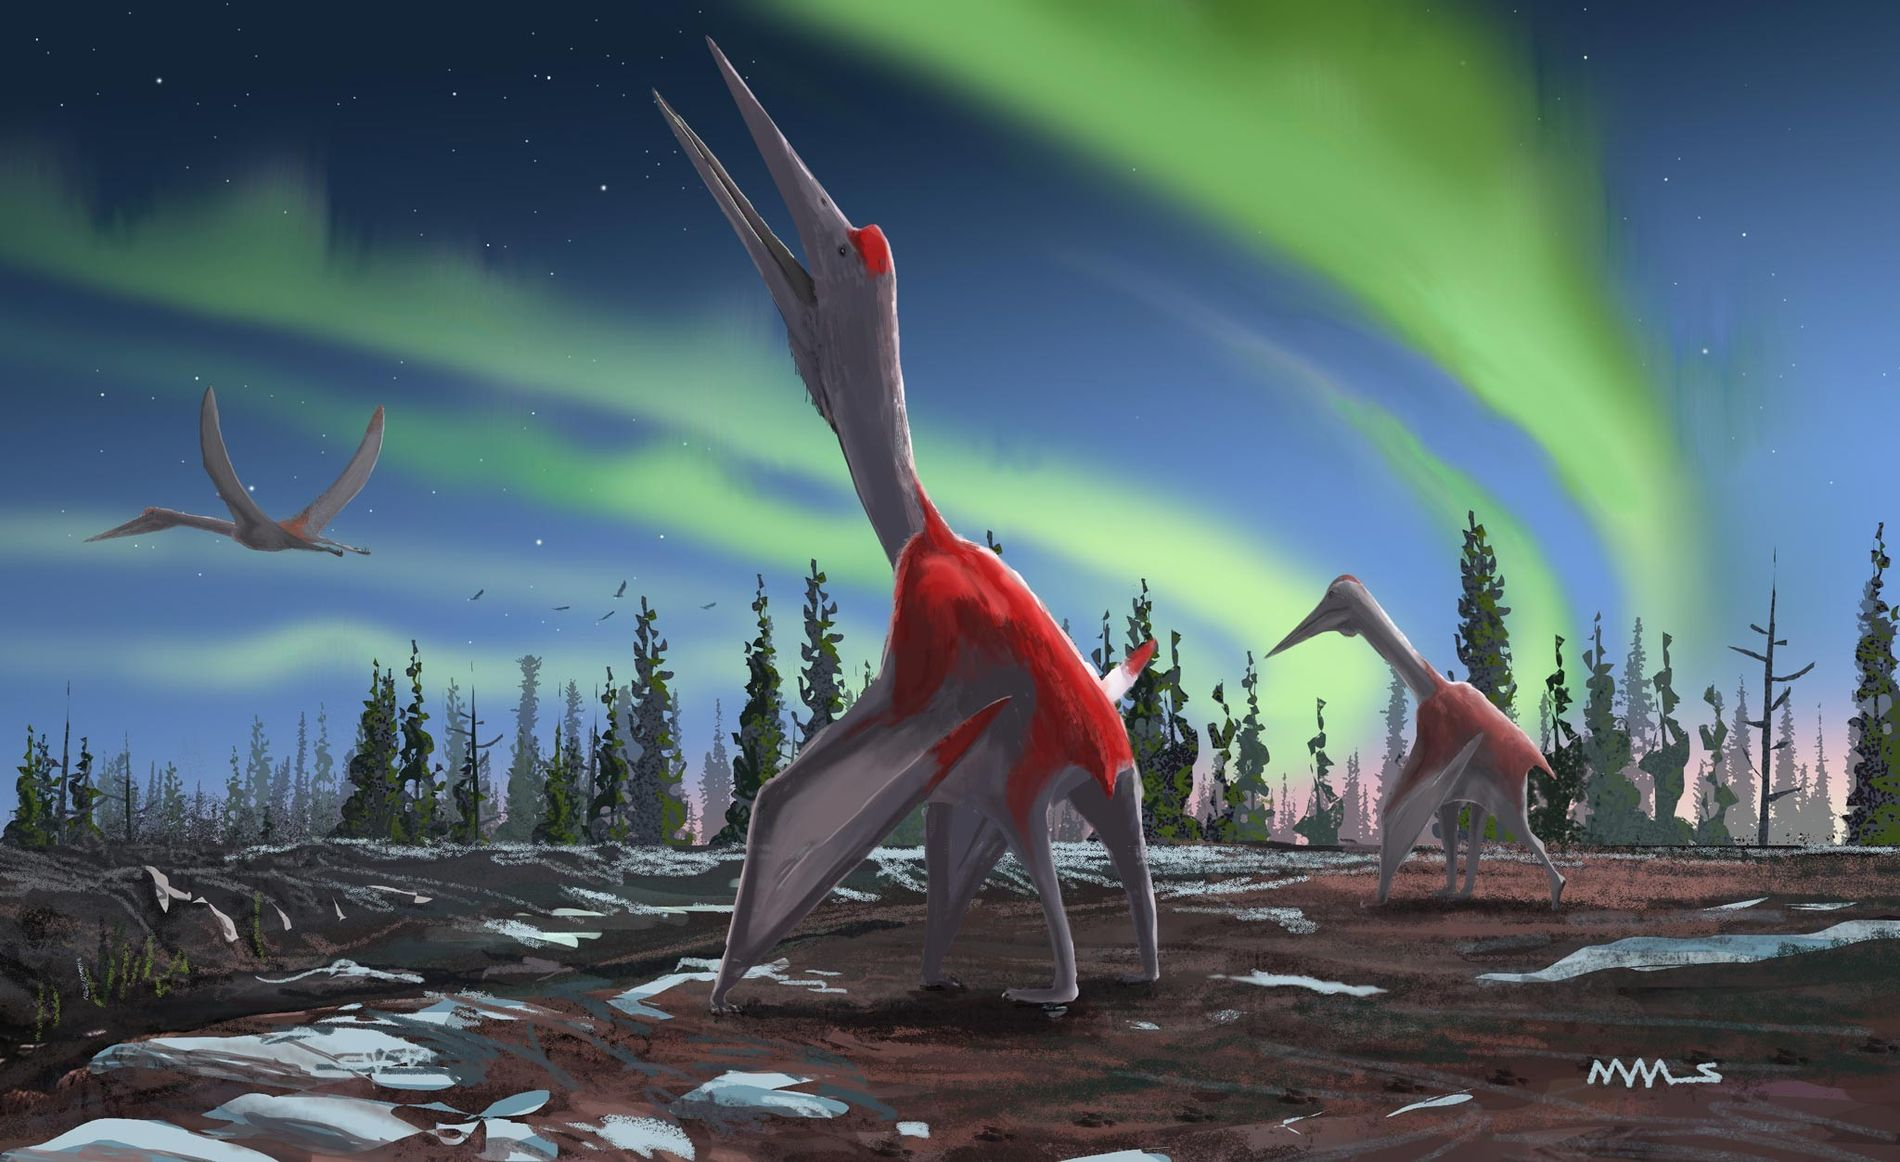 A new study in the Journal of Vertebrate Paleontology describes a new pterosaur called Cryodrakon boreas, 'frozen dragon of the north winds.' The flying reptile had a wingspan of at least 16 feet and may have grown to a wingspan of up to 33 feet, the size of its relative Quetzalcoatlus northropi.